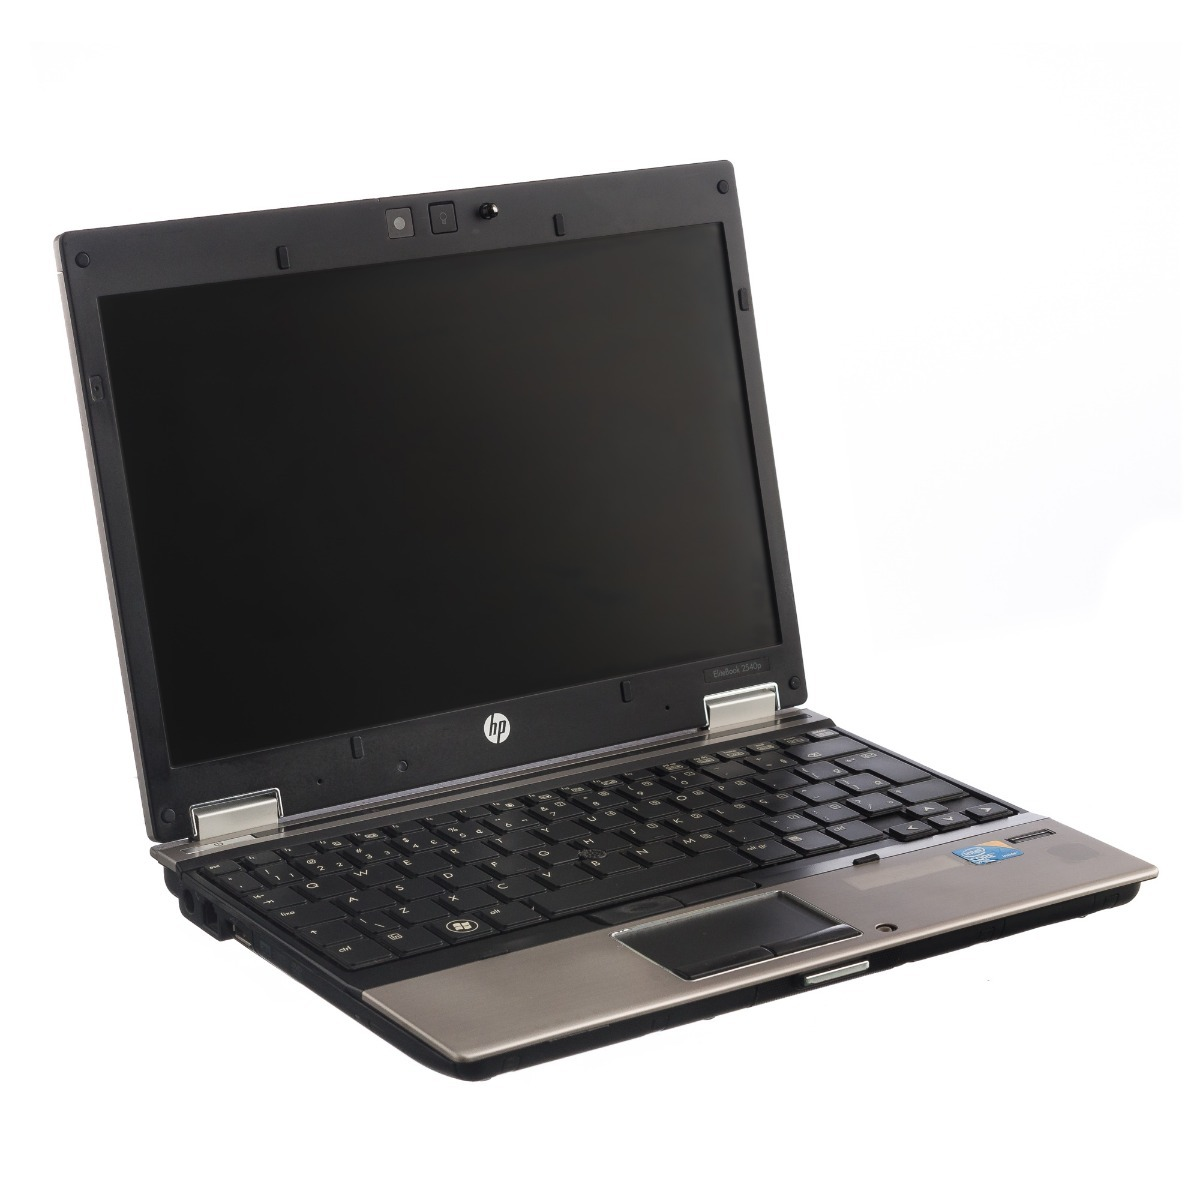 DRIVERS FOR HP ELITEBOOK 2540P NOTEBOOK INTEL PROWLAN